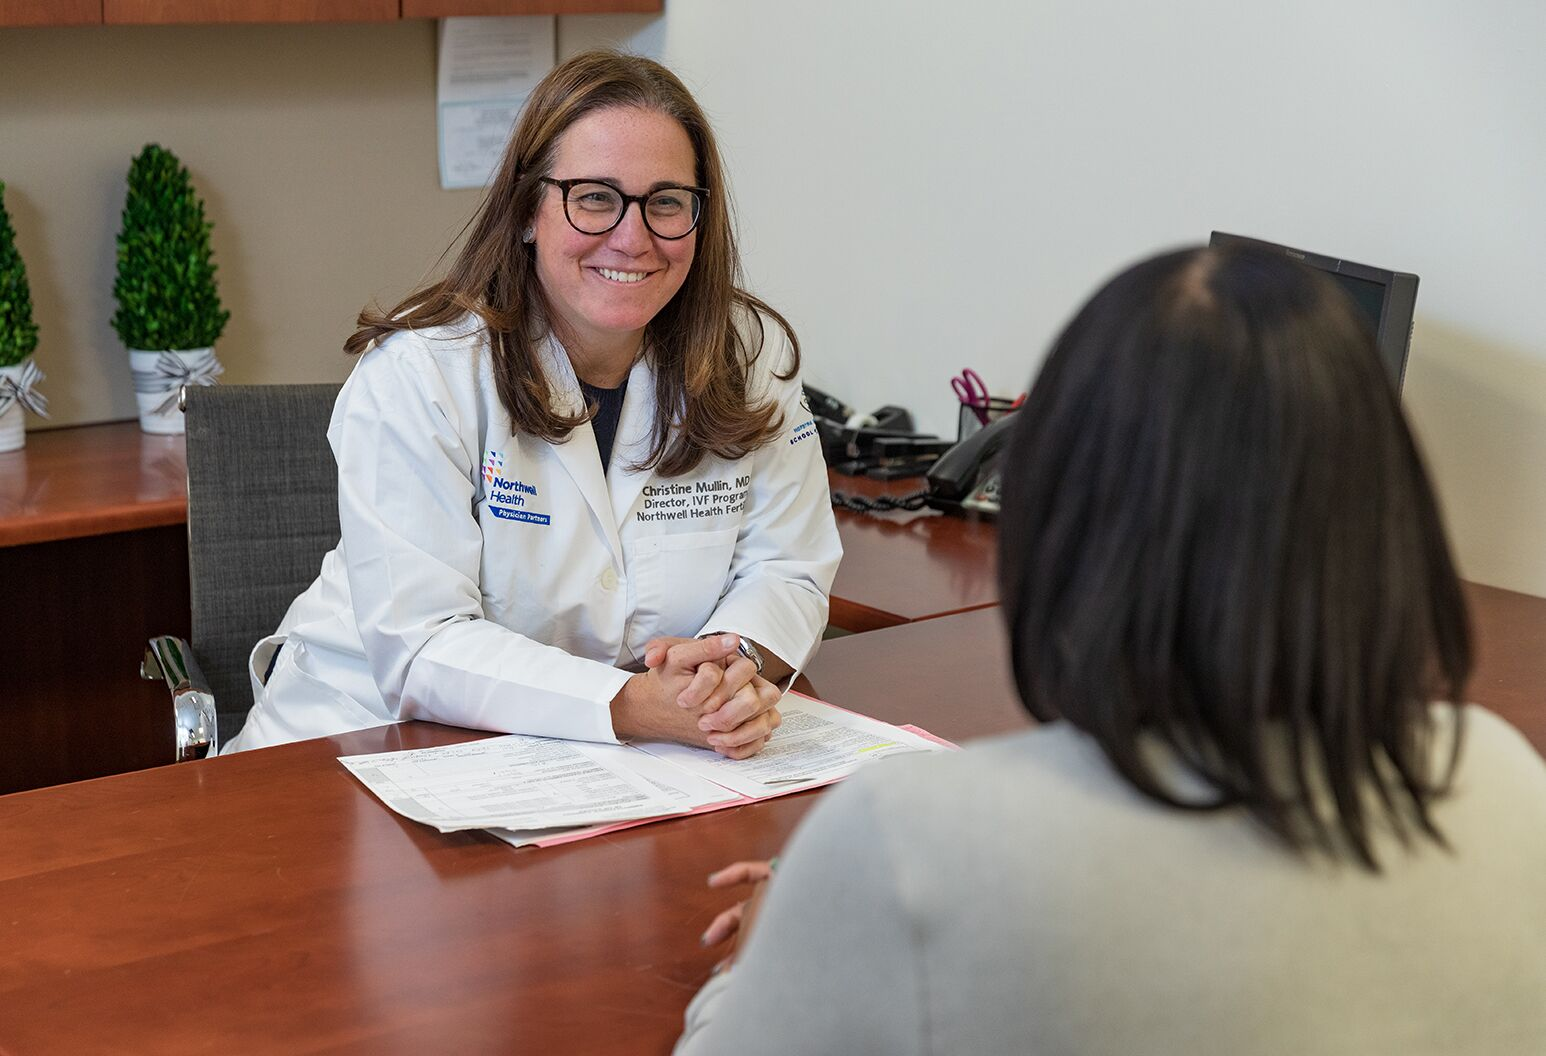 A female doctor wearing a Northwell branded lab coat sits at a desk talking to a female patient.